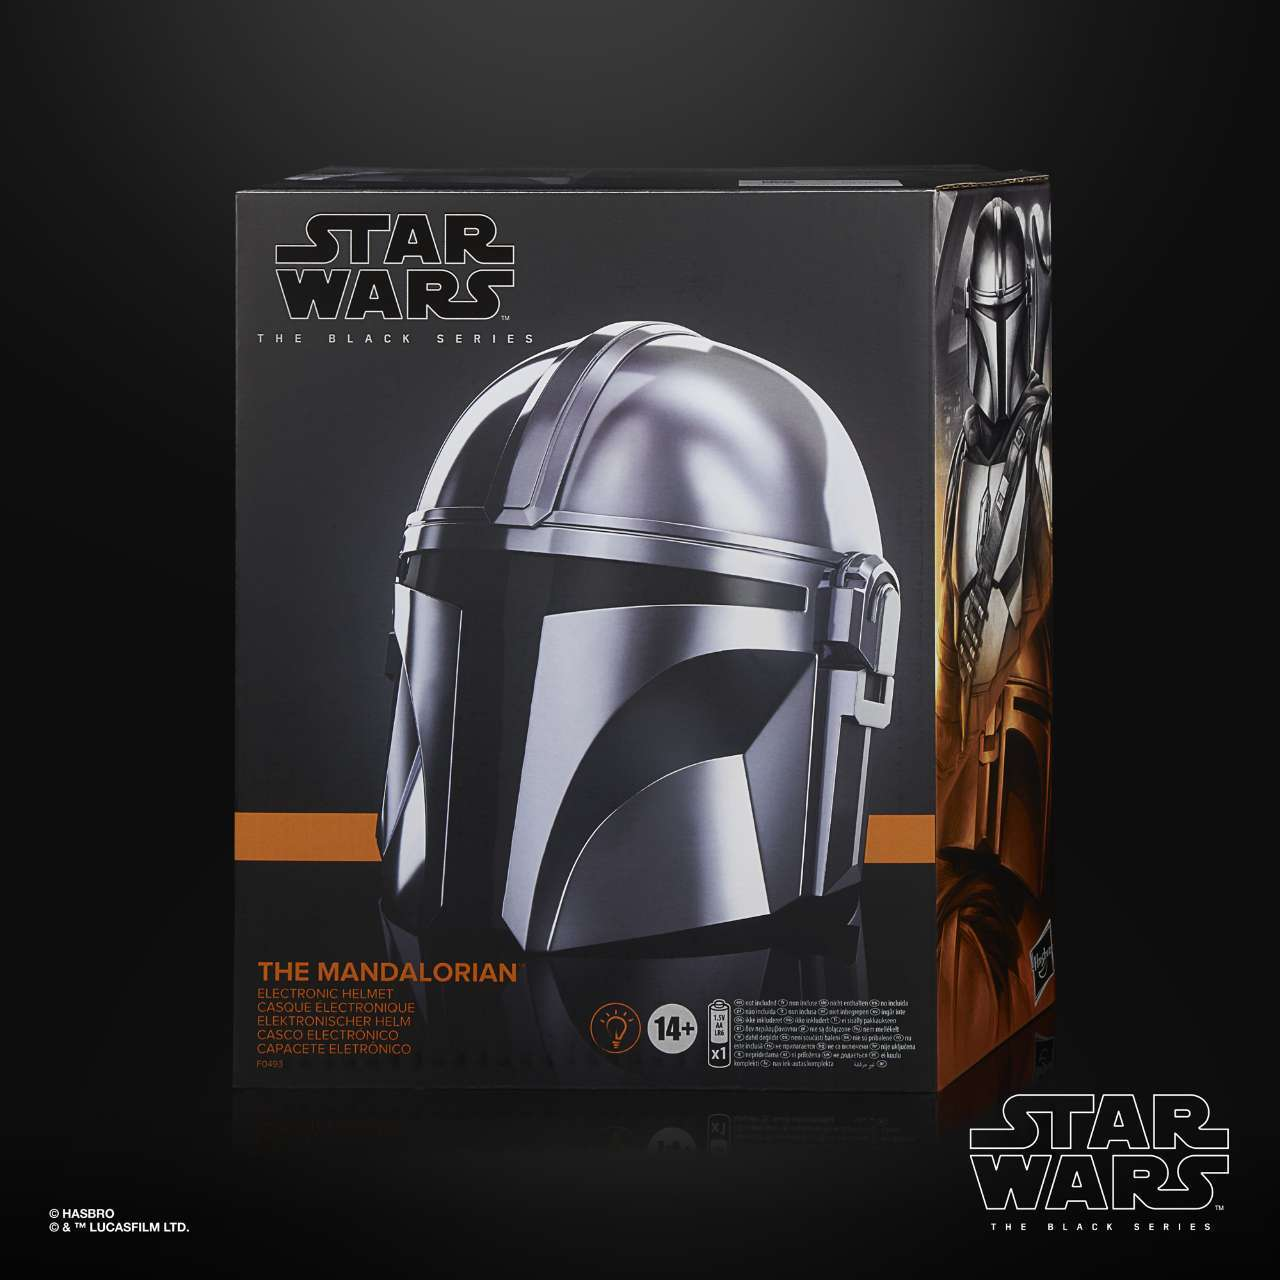 STAR WARS THE BLACK SERIES THE MANDALORIAN ELECTRONIC HELMET - in pck (1)